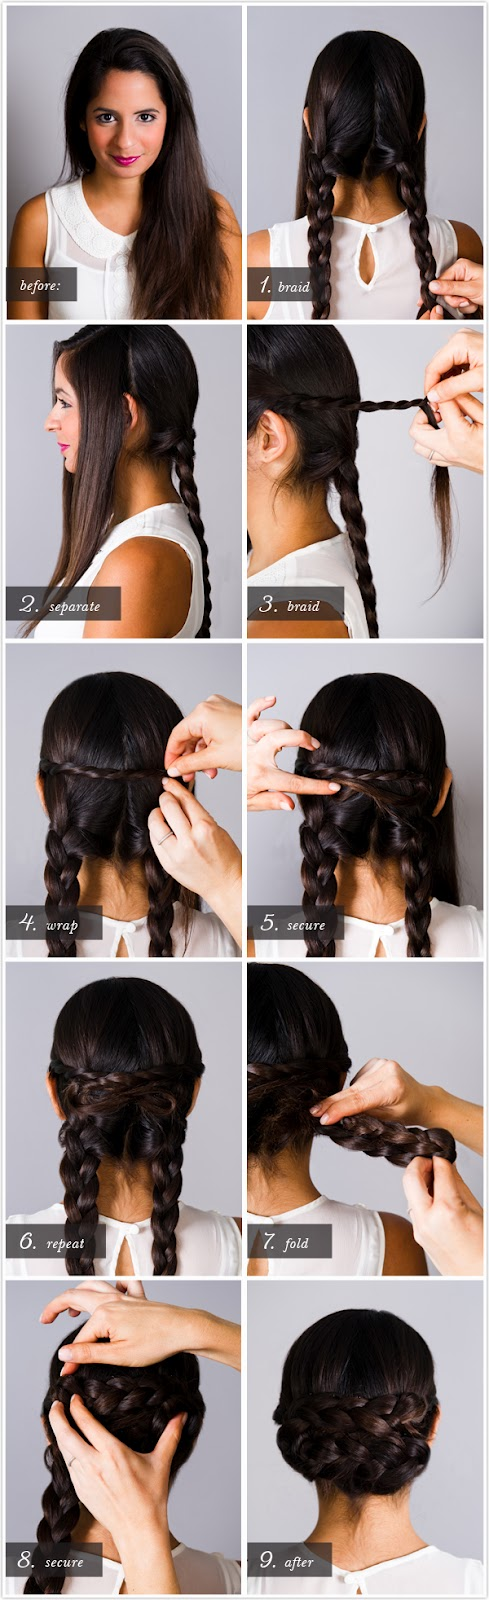 25 Easy Hairstyles With Braidssix Sisters Stuff Six Sisters Stuff